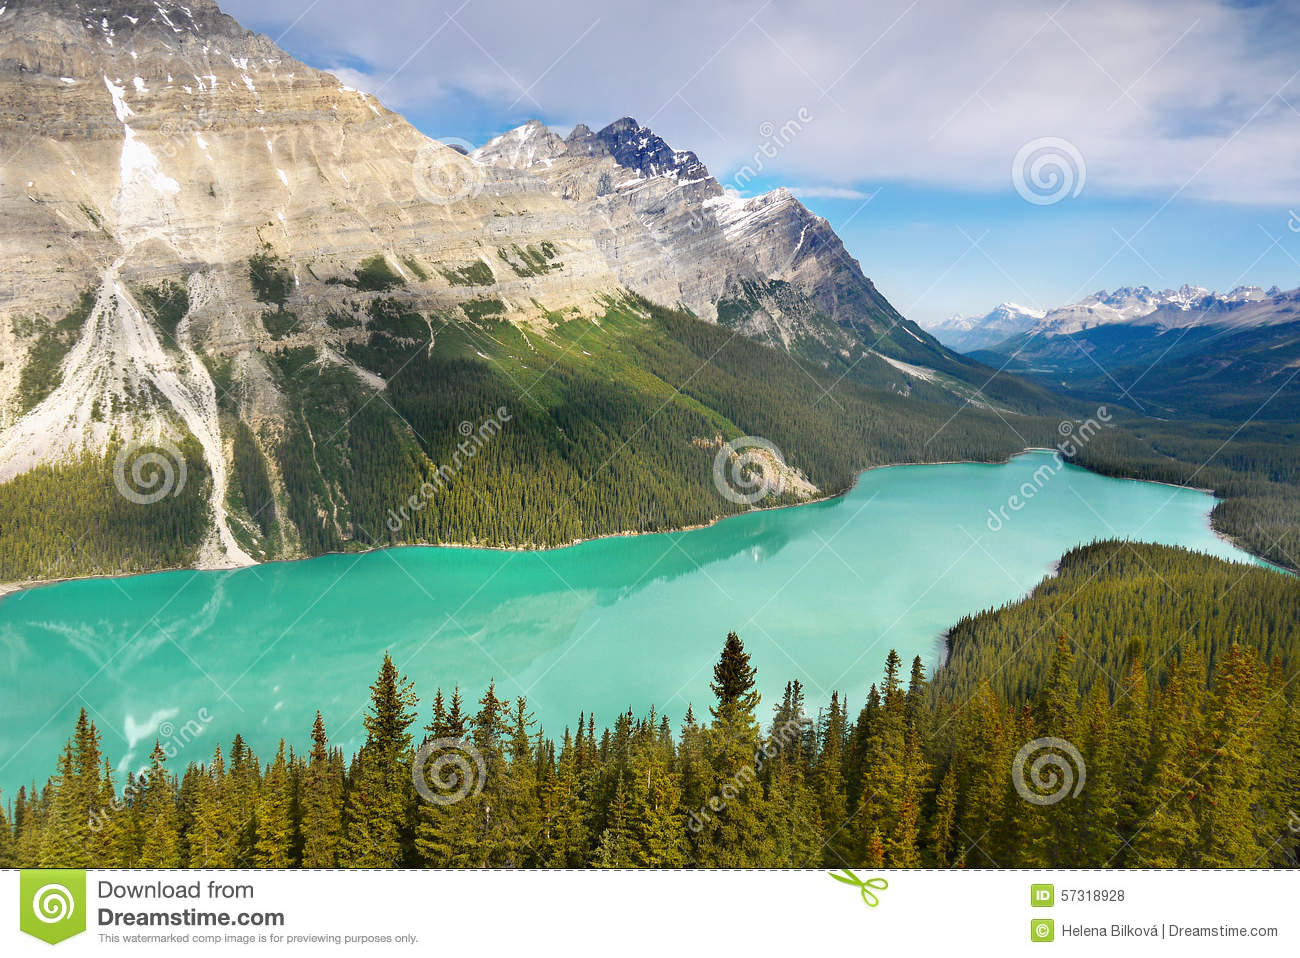 Peyto Lake clipart #13, Download drawings